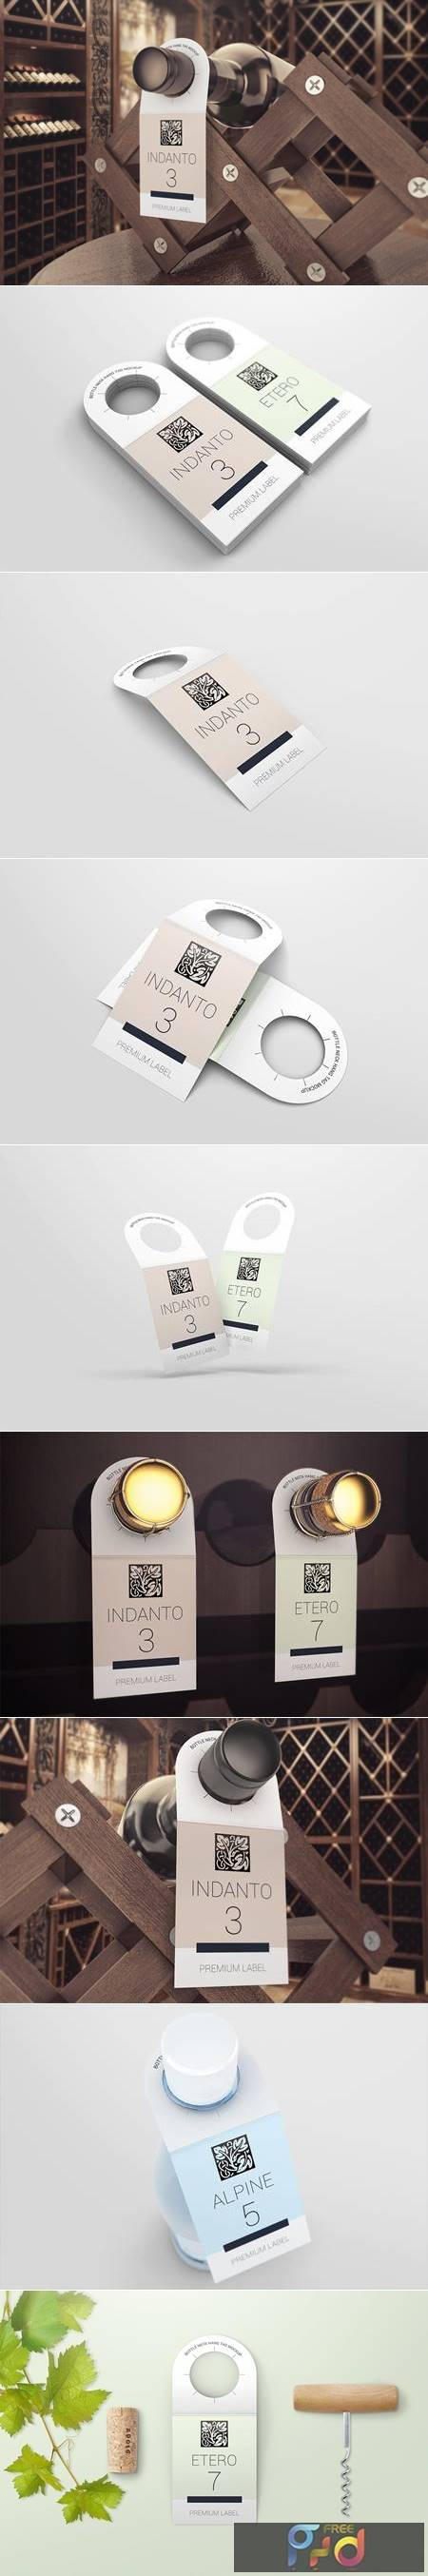 Bottle Neck Hang Tag Mockup VSXH5V 1